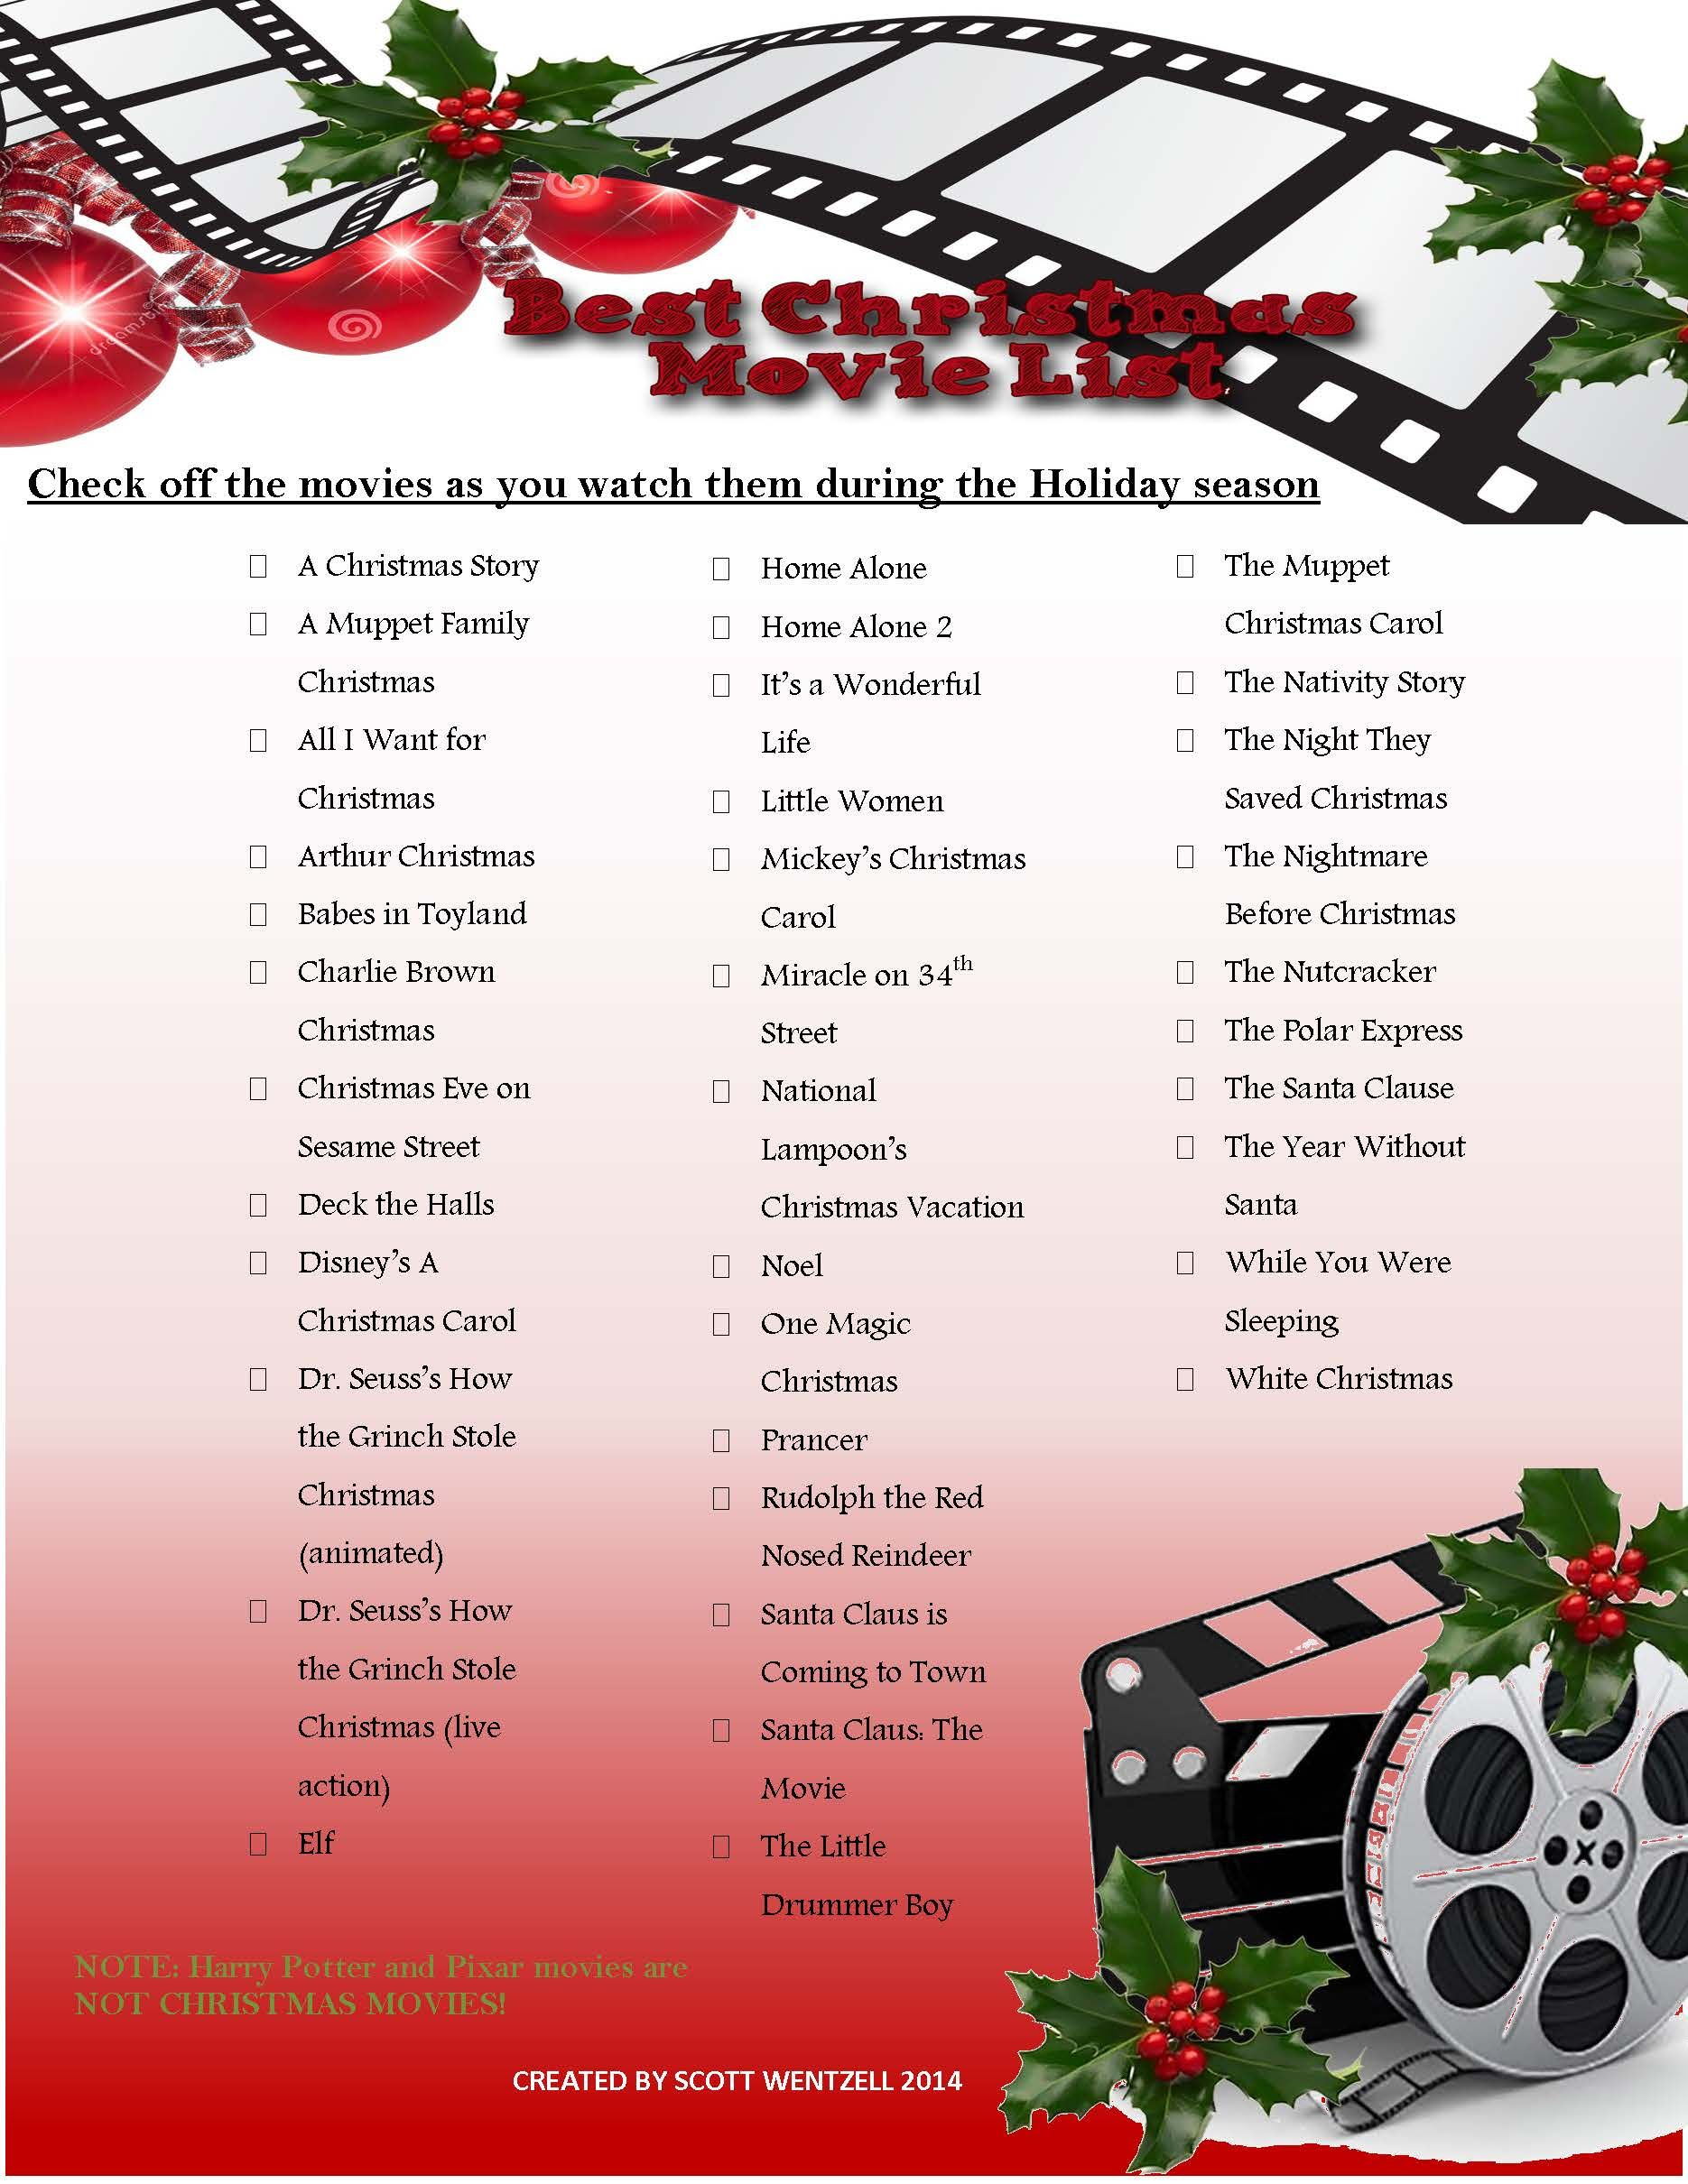 A List Of The Best Christmas Movies To Use As A Checklist With Your Family Christmas Mov Best Christmas Movies Family Christmas Movies Christmas Movies List